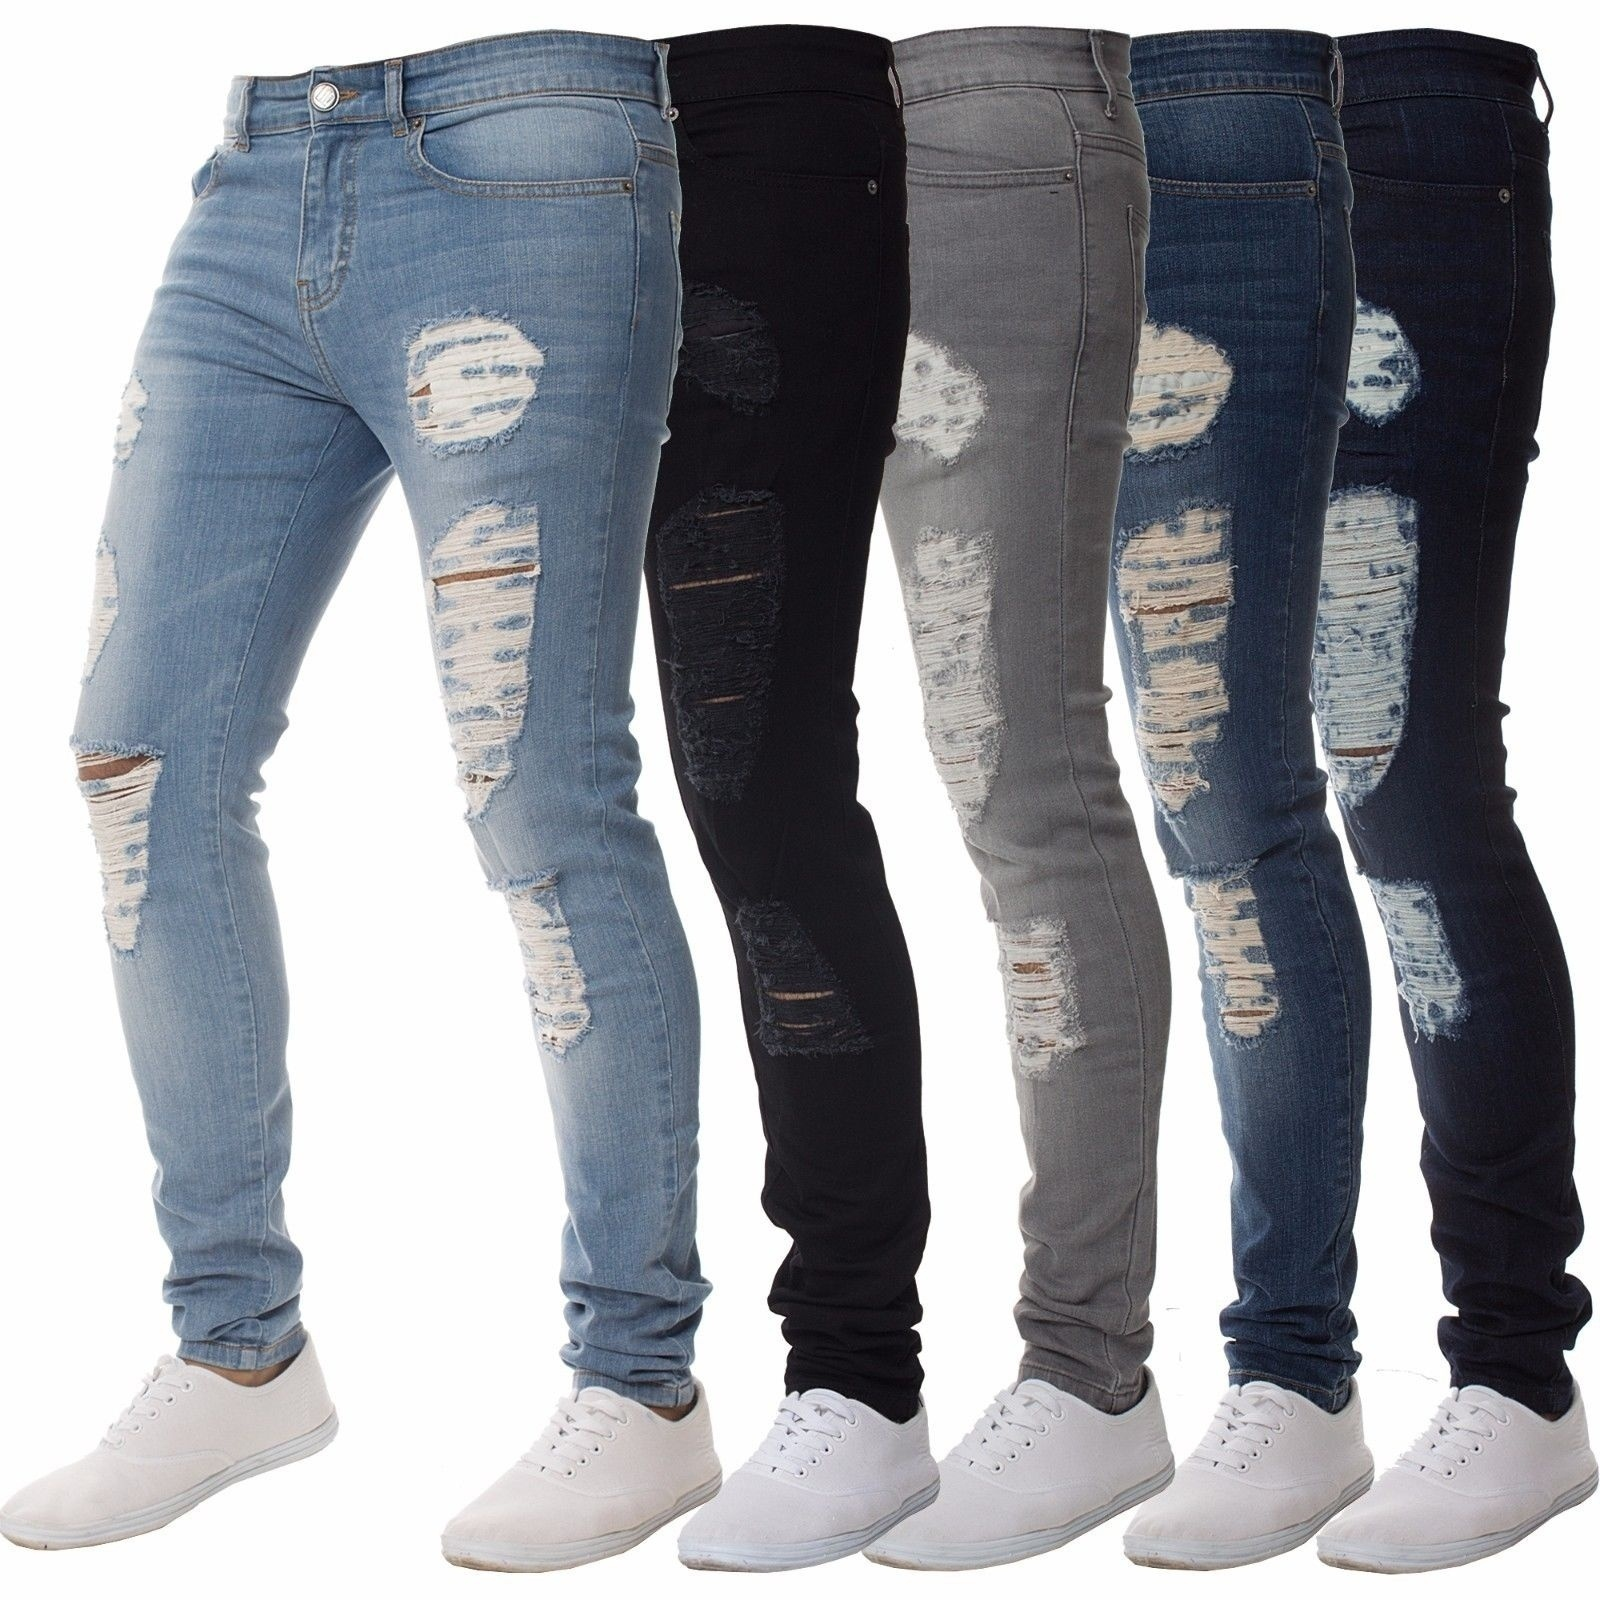 Mens Solid Color Jeans 2020 New Fashion Slim Pencil Pants Sexy Casual Hole Ripped Design Streetwear Spring And Summer